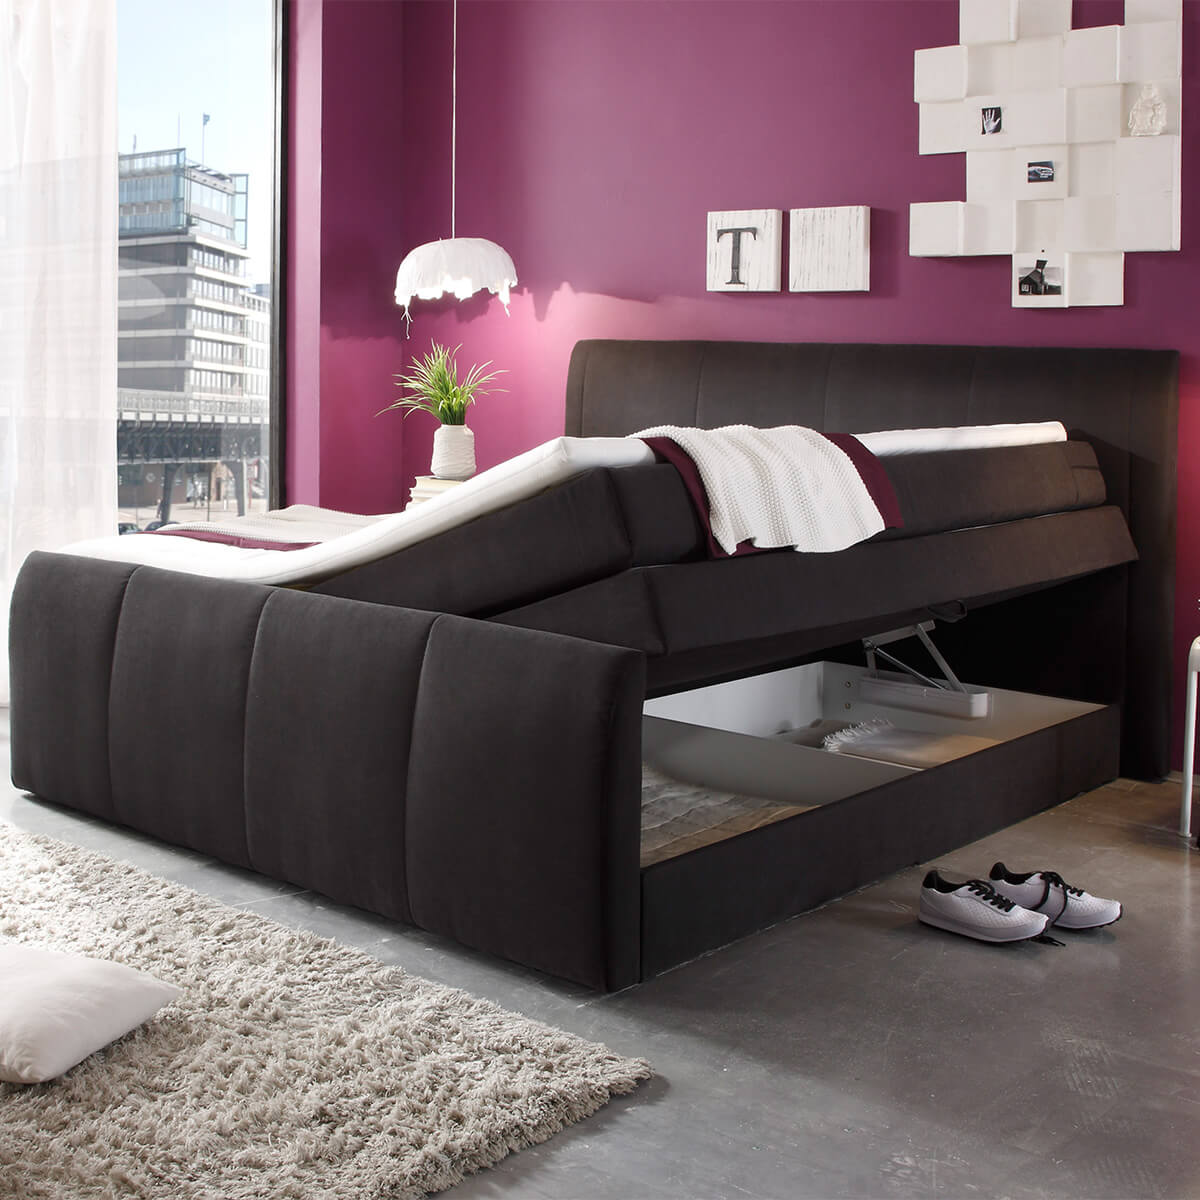 boxspringbett online kaufen dormando. Black Bedroom Furniture Sets. Home Design Ideas